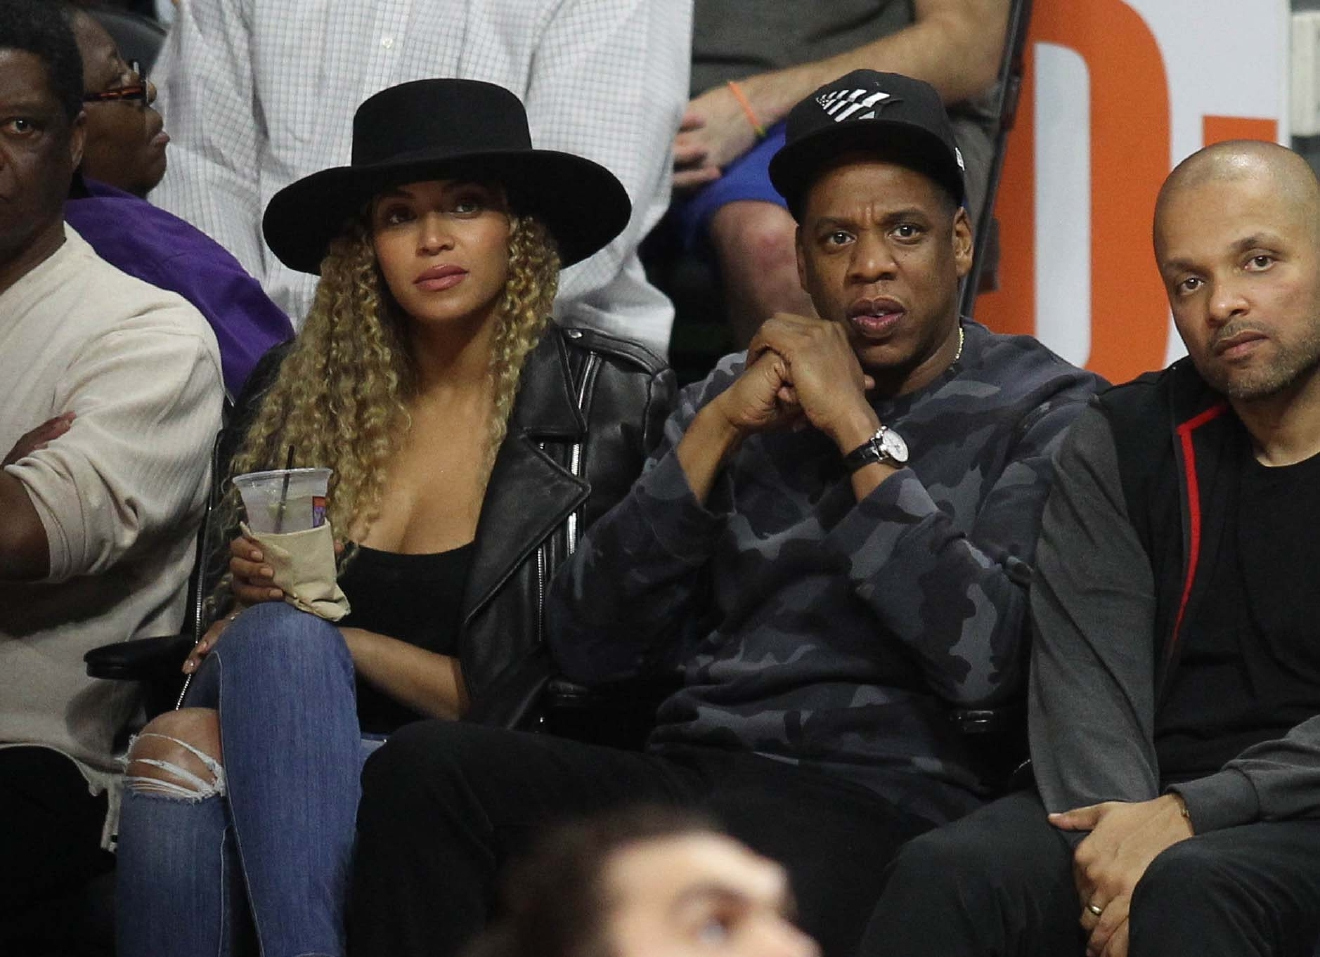 Beyonce and Jay-Z at the Los Angeles Clippers game at Staples Center in downtown Los Angeles on March 2, 2016. (WENN.com)